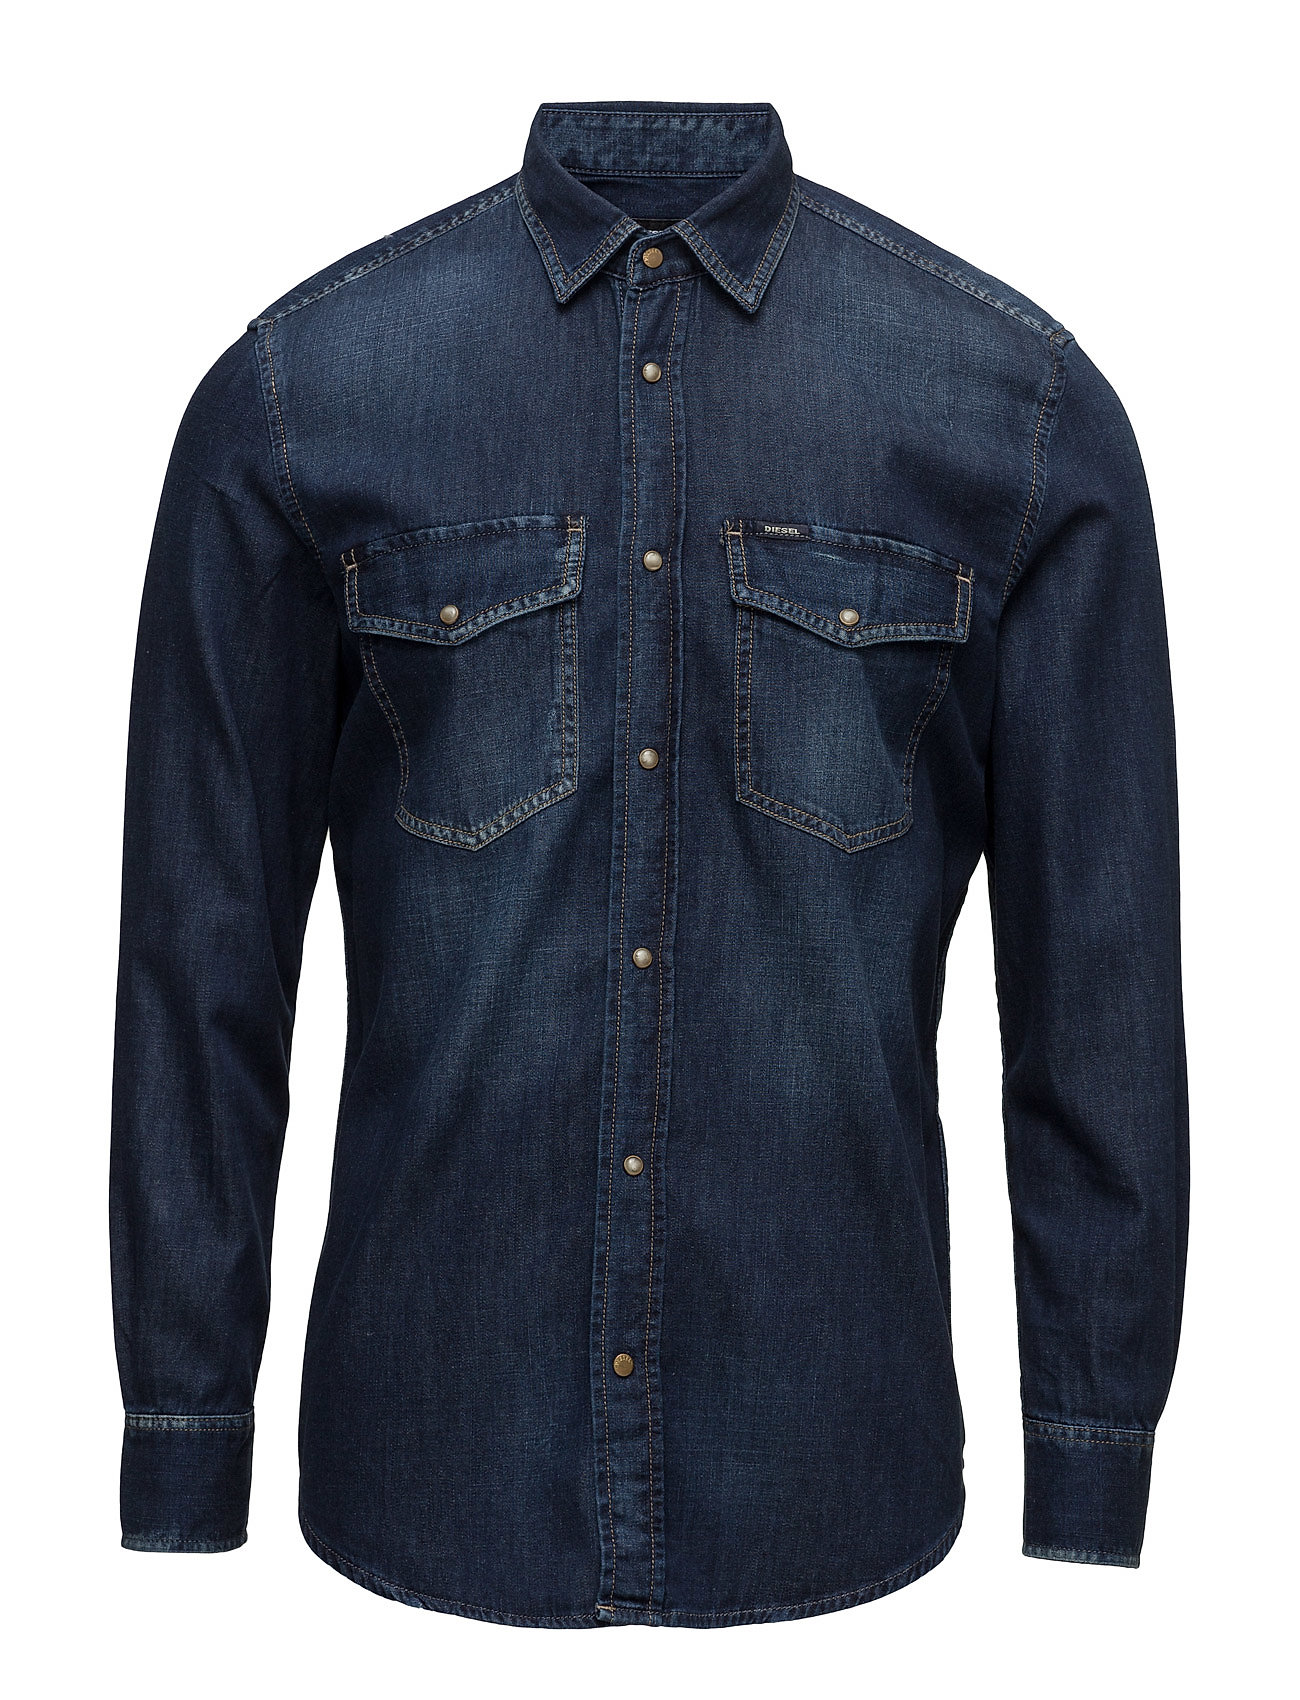 D-Rooke Shirt Diesel Men Casual sko til Herrer i Denim